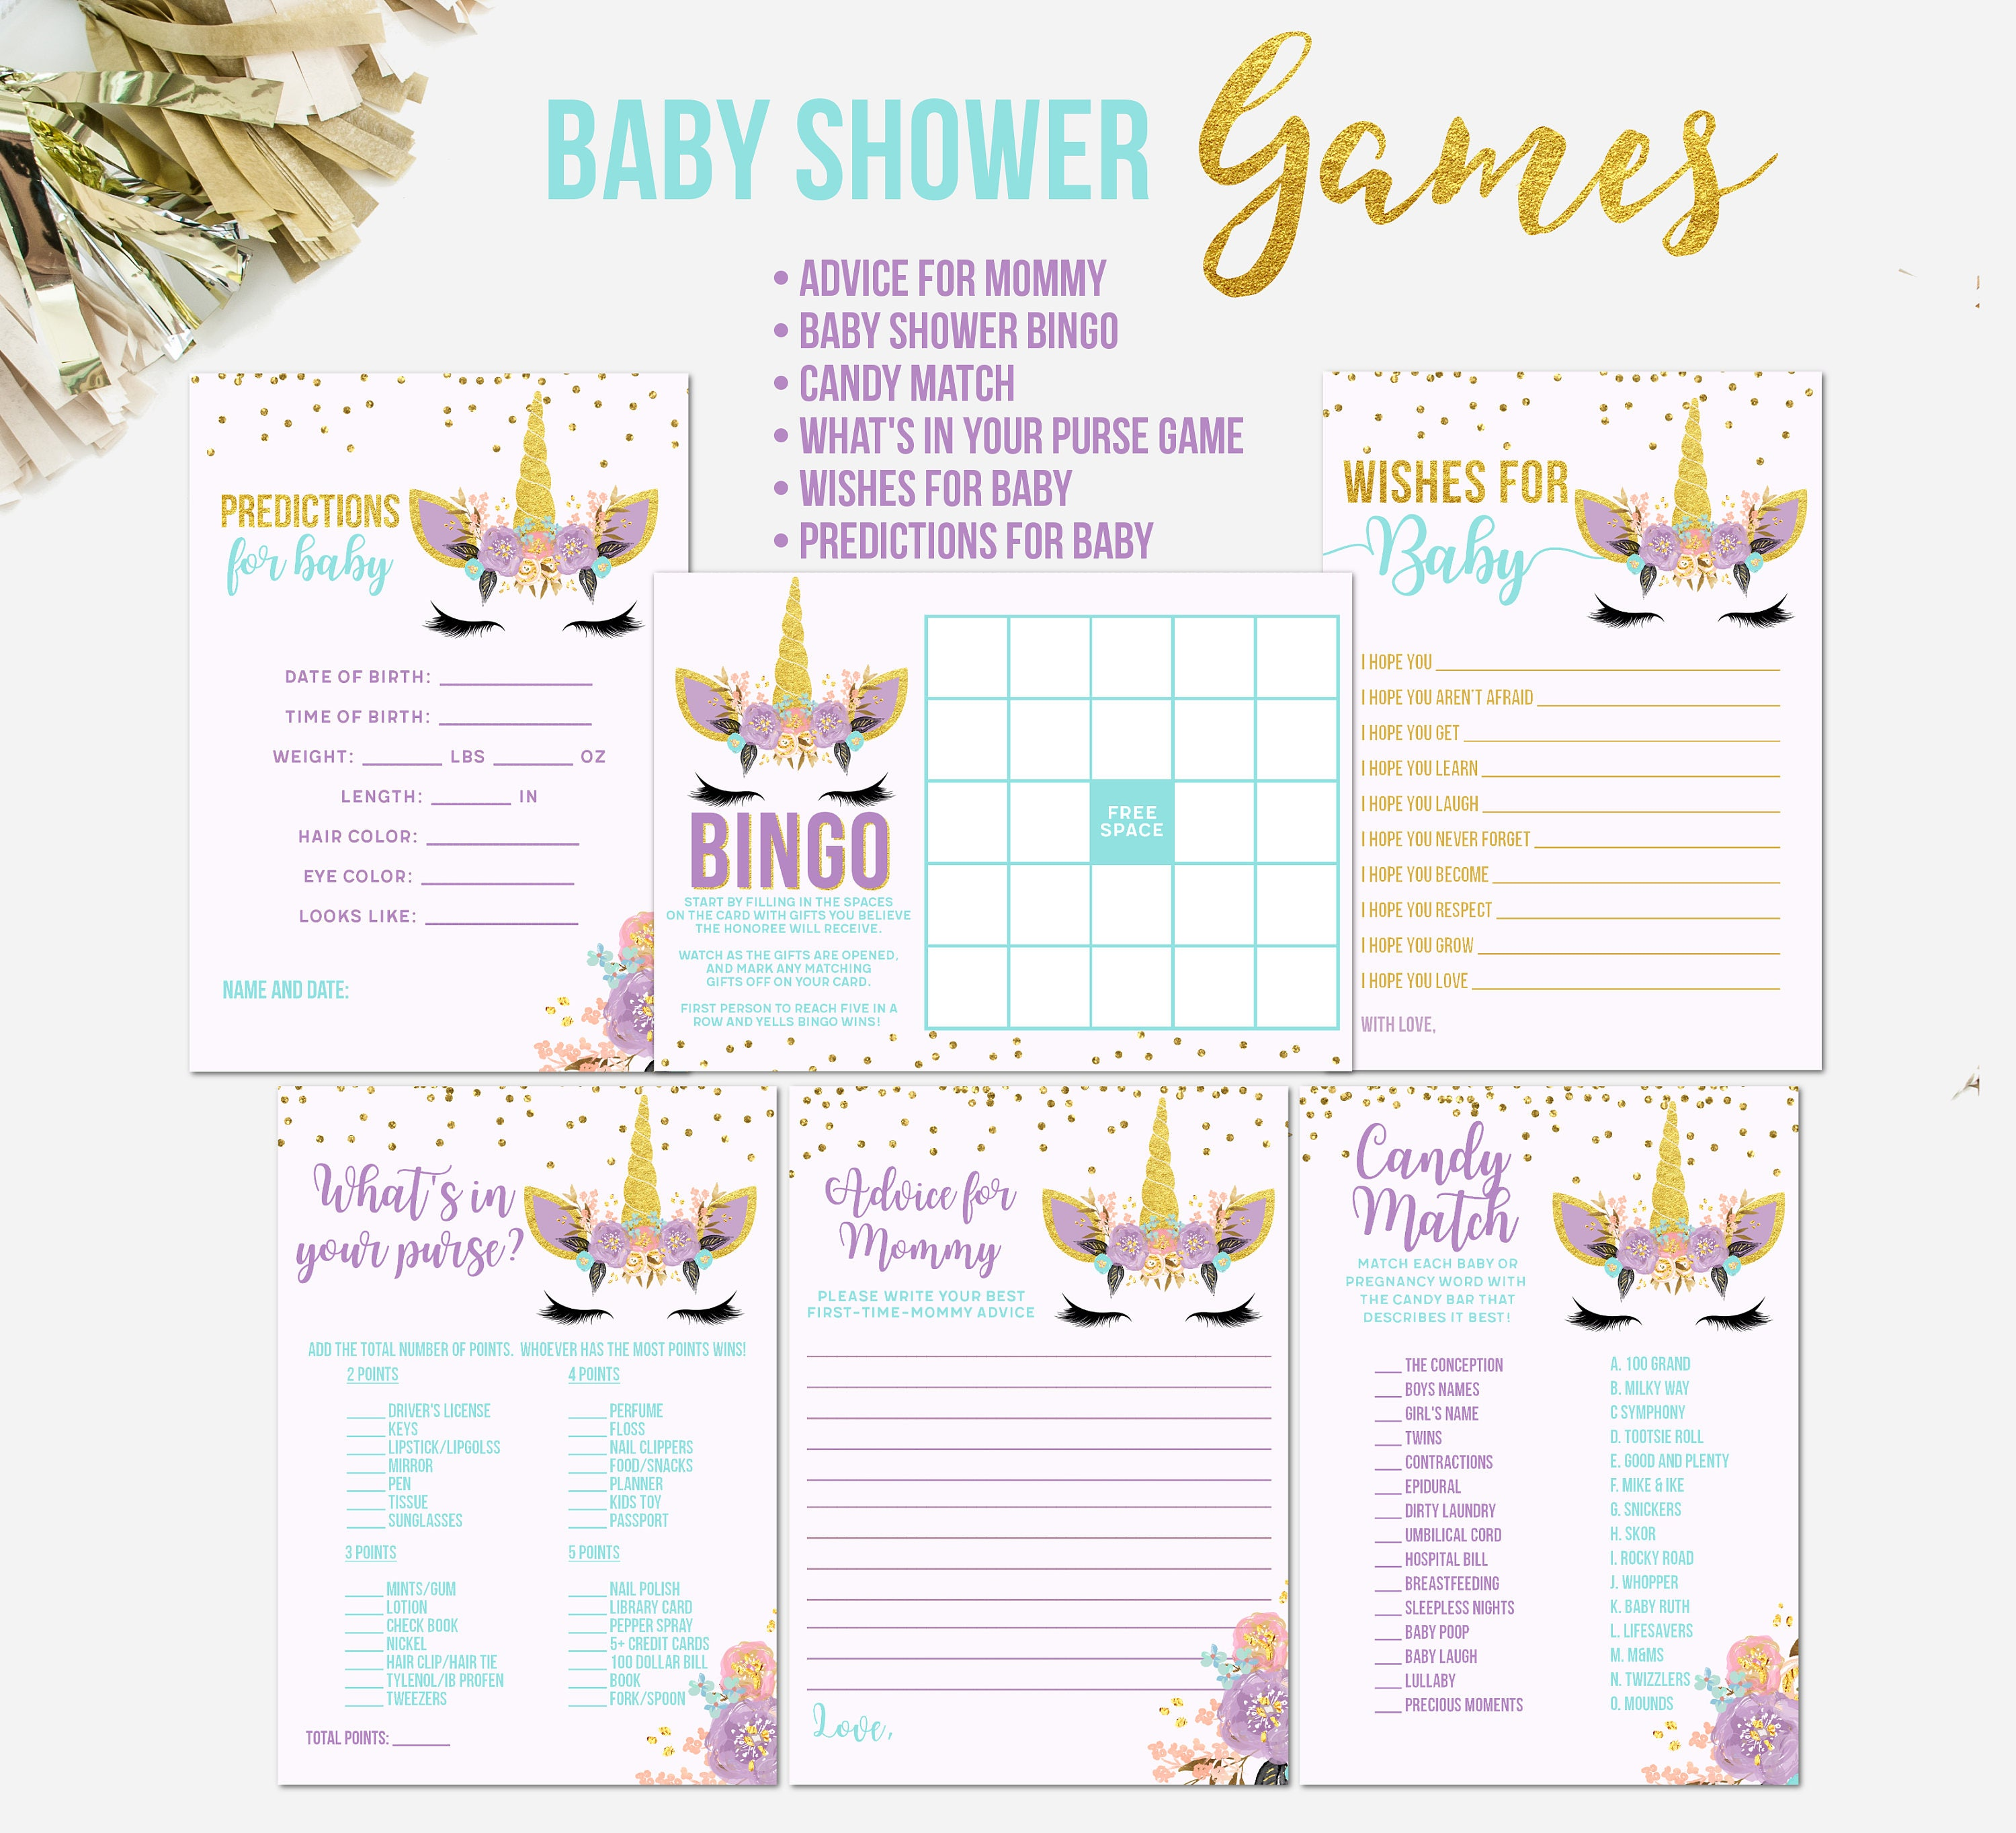 93597239690f3 Unicorn Baby Shower Games, Unicorn Face, Printable Unicorn Baby Shower  Games, Wishes for Baby, Advice For Mommy, BINGO, Prediction Cards